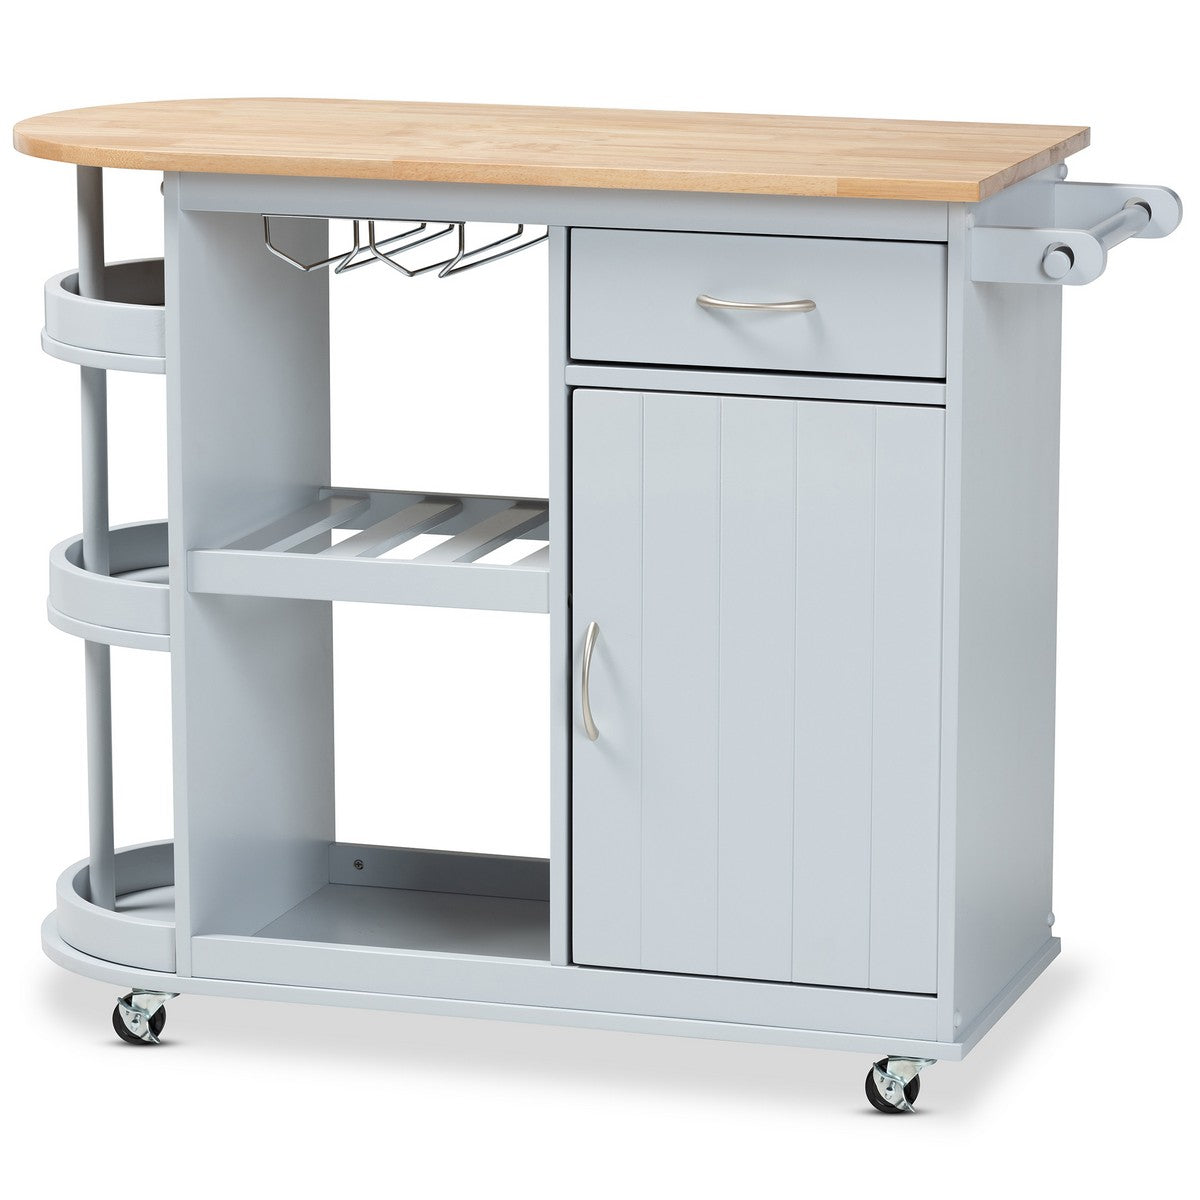 Baxton Studio Donnie Coastal and Farmhouse Two-Tone Light Grey and Natural Finished Wood Kitchen Storage Cart Baxton Studio-Trolleys and Carts-Minimal And Modern - 1